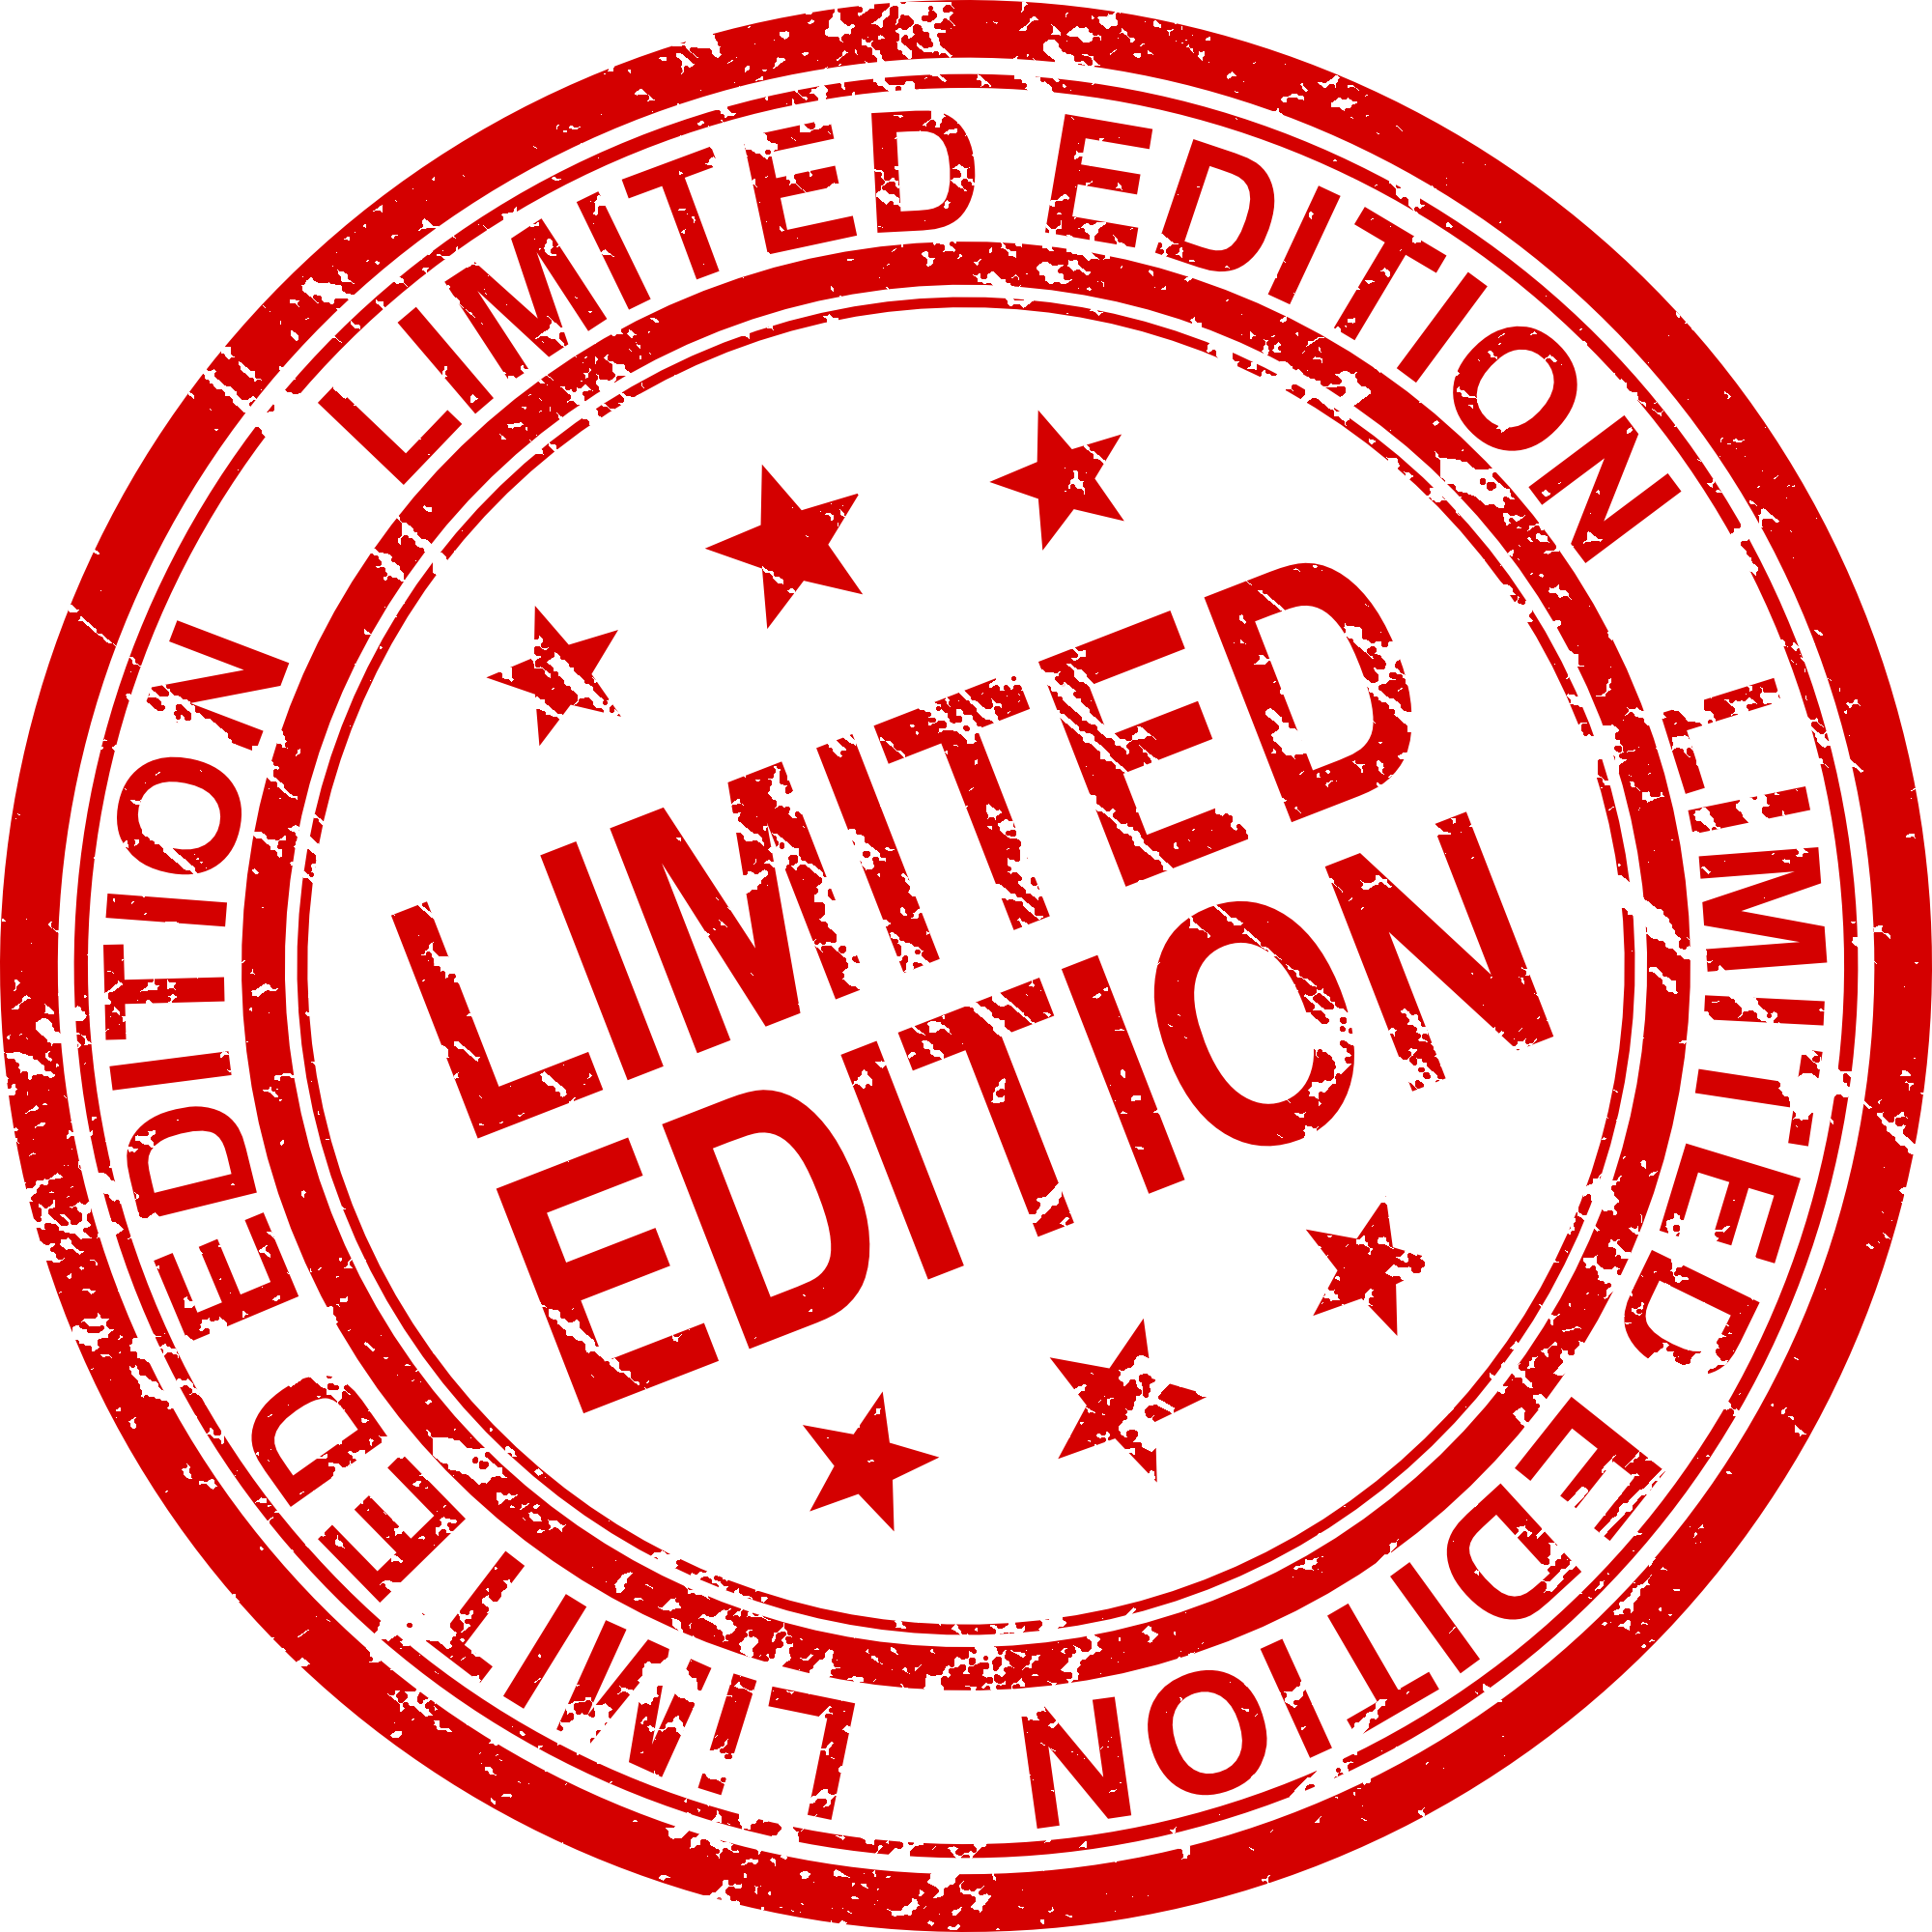 Limited edition definition is - an issue of something collectible (such as books, prints, or medals) that is advertised to be limited to a relatively small number of copies.